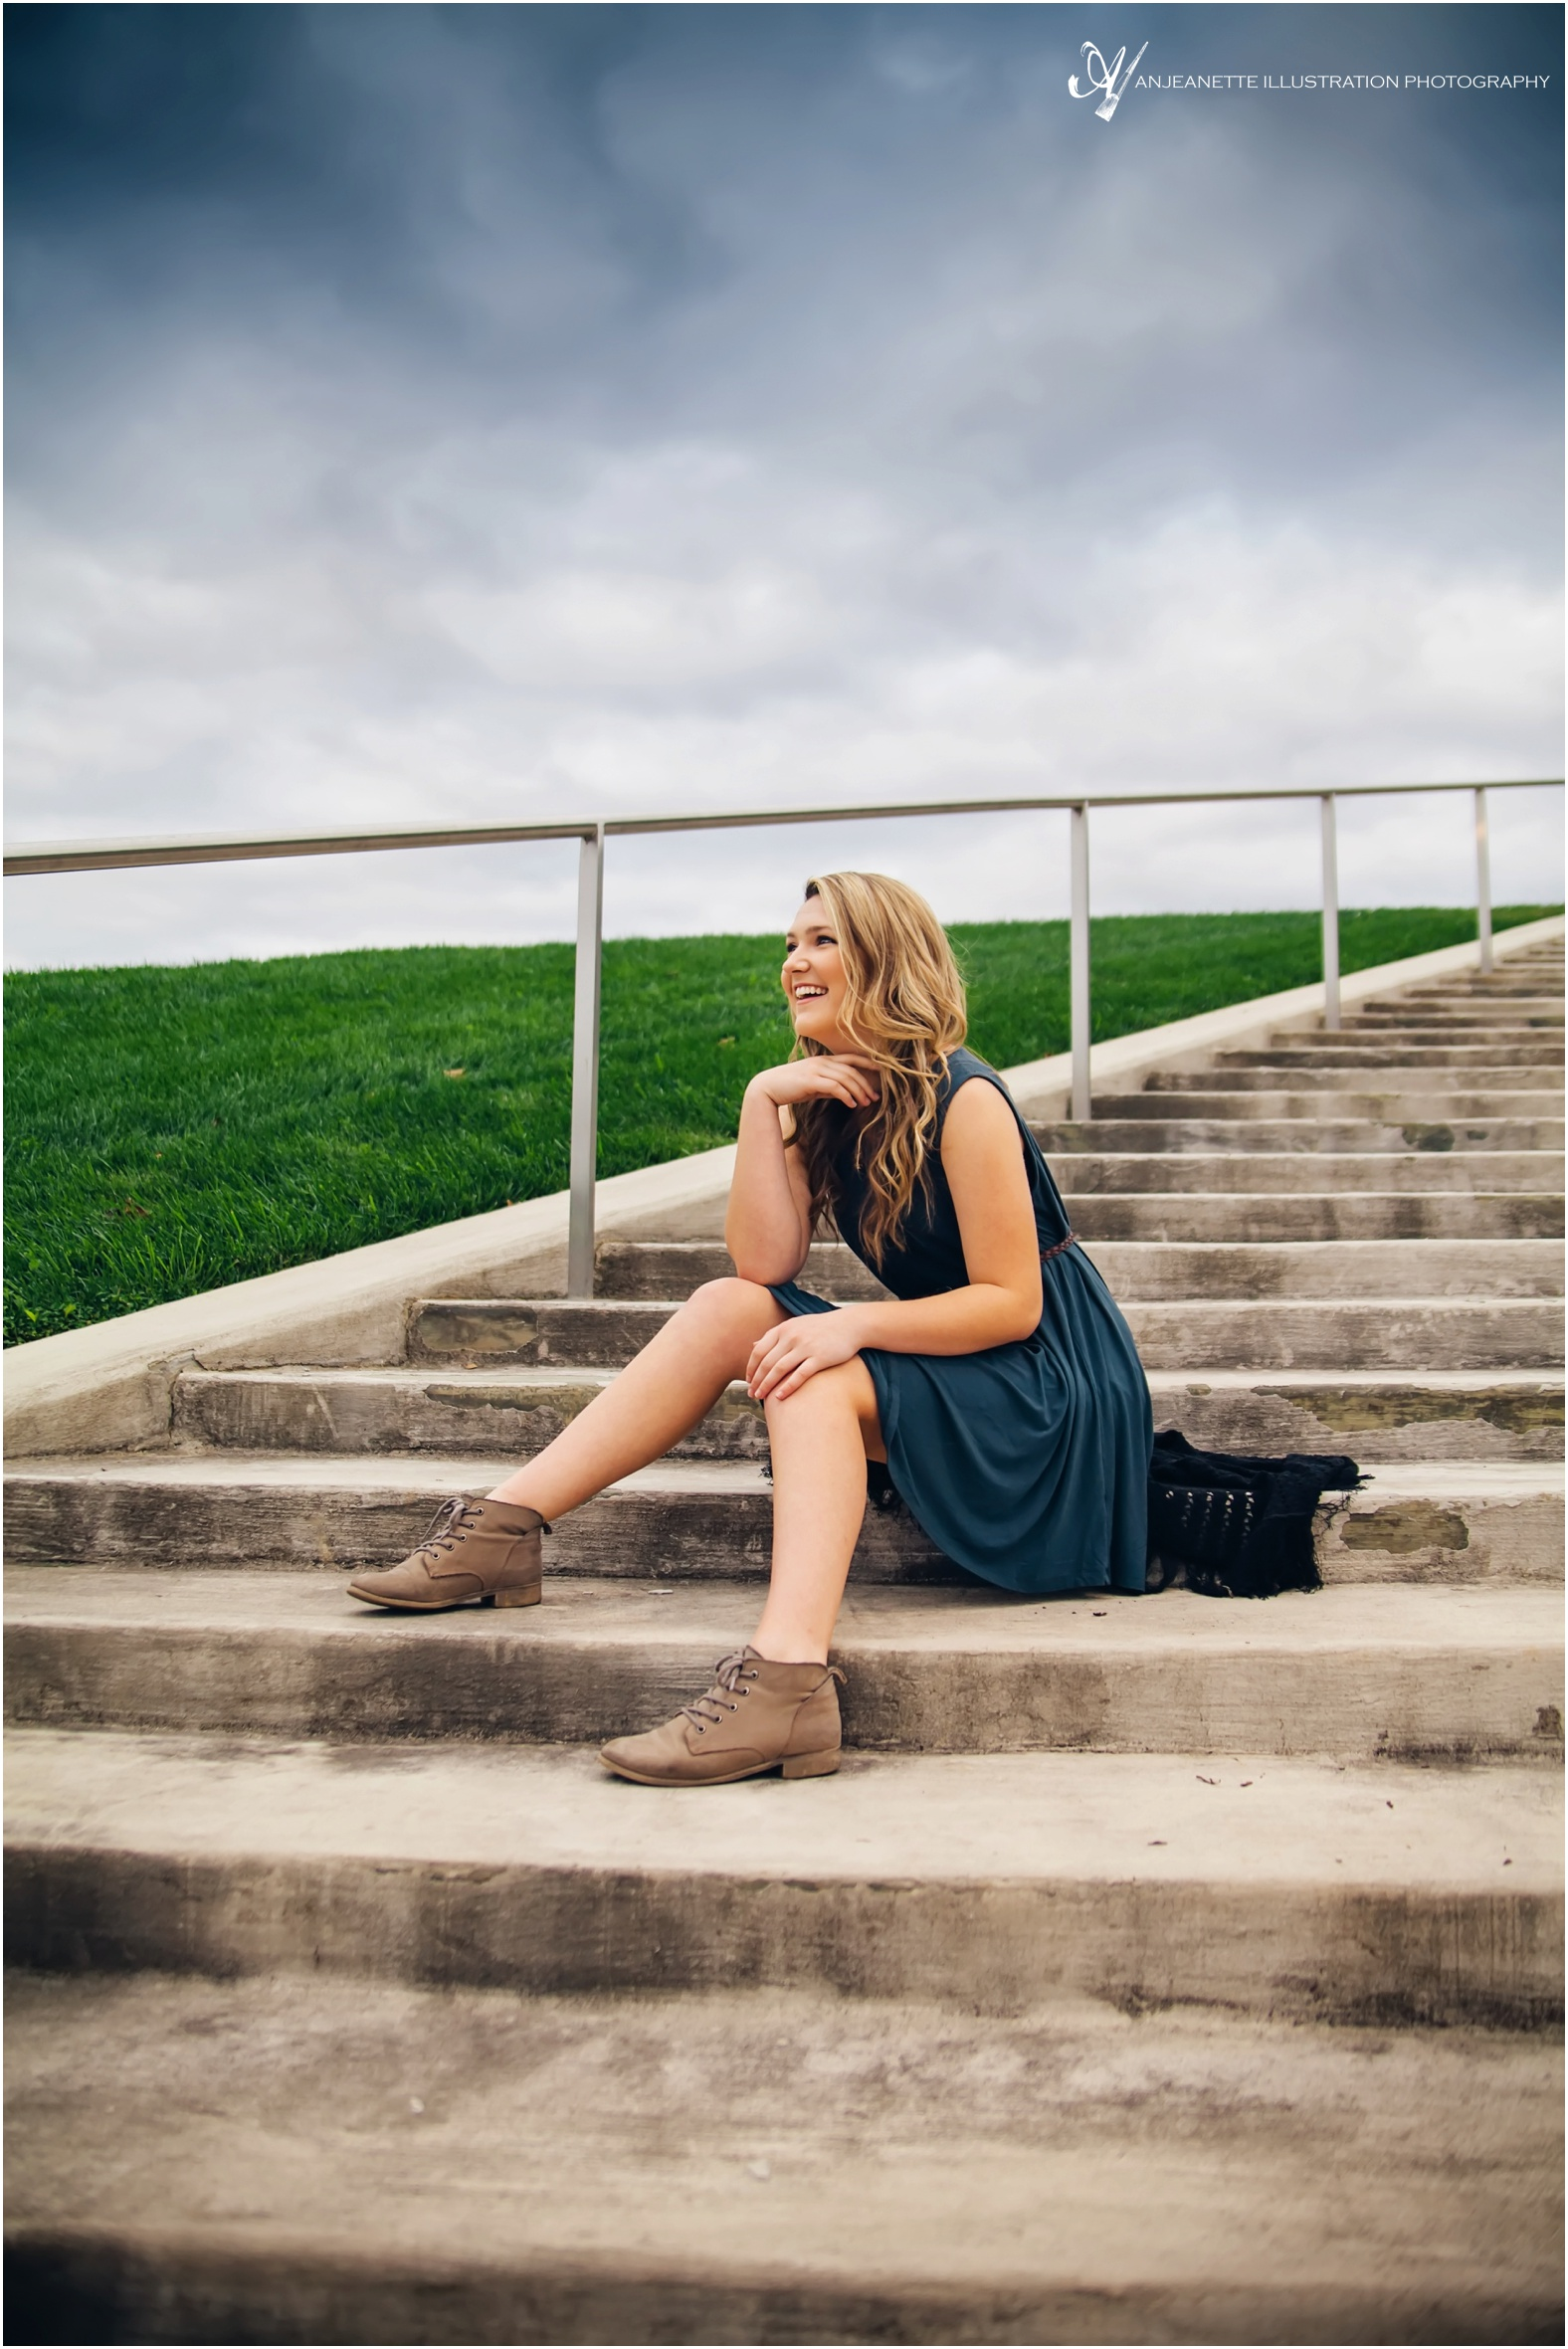 Hendersonville Tn Senior pictures Nashville Senior Portraits  | Artistic Photographer Anjeanette Illustration Photography